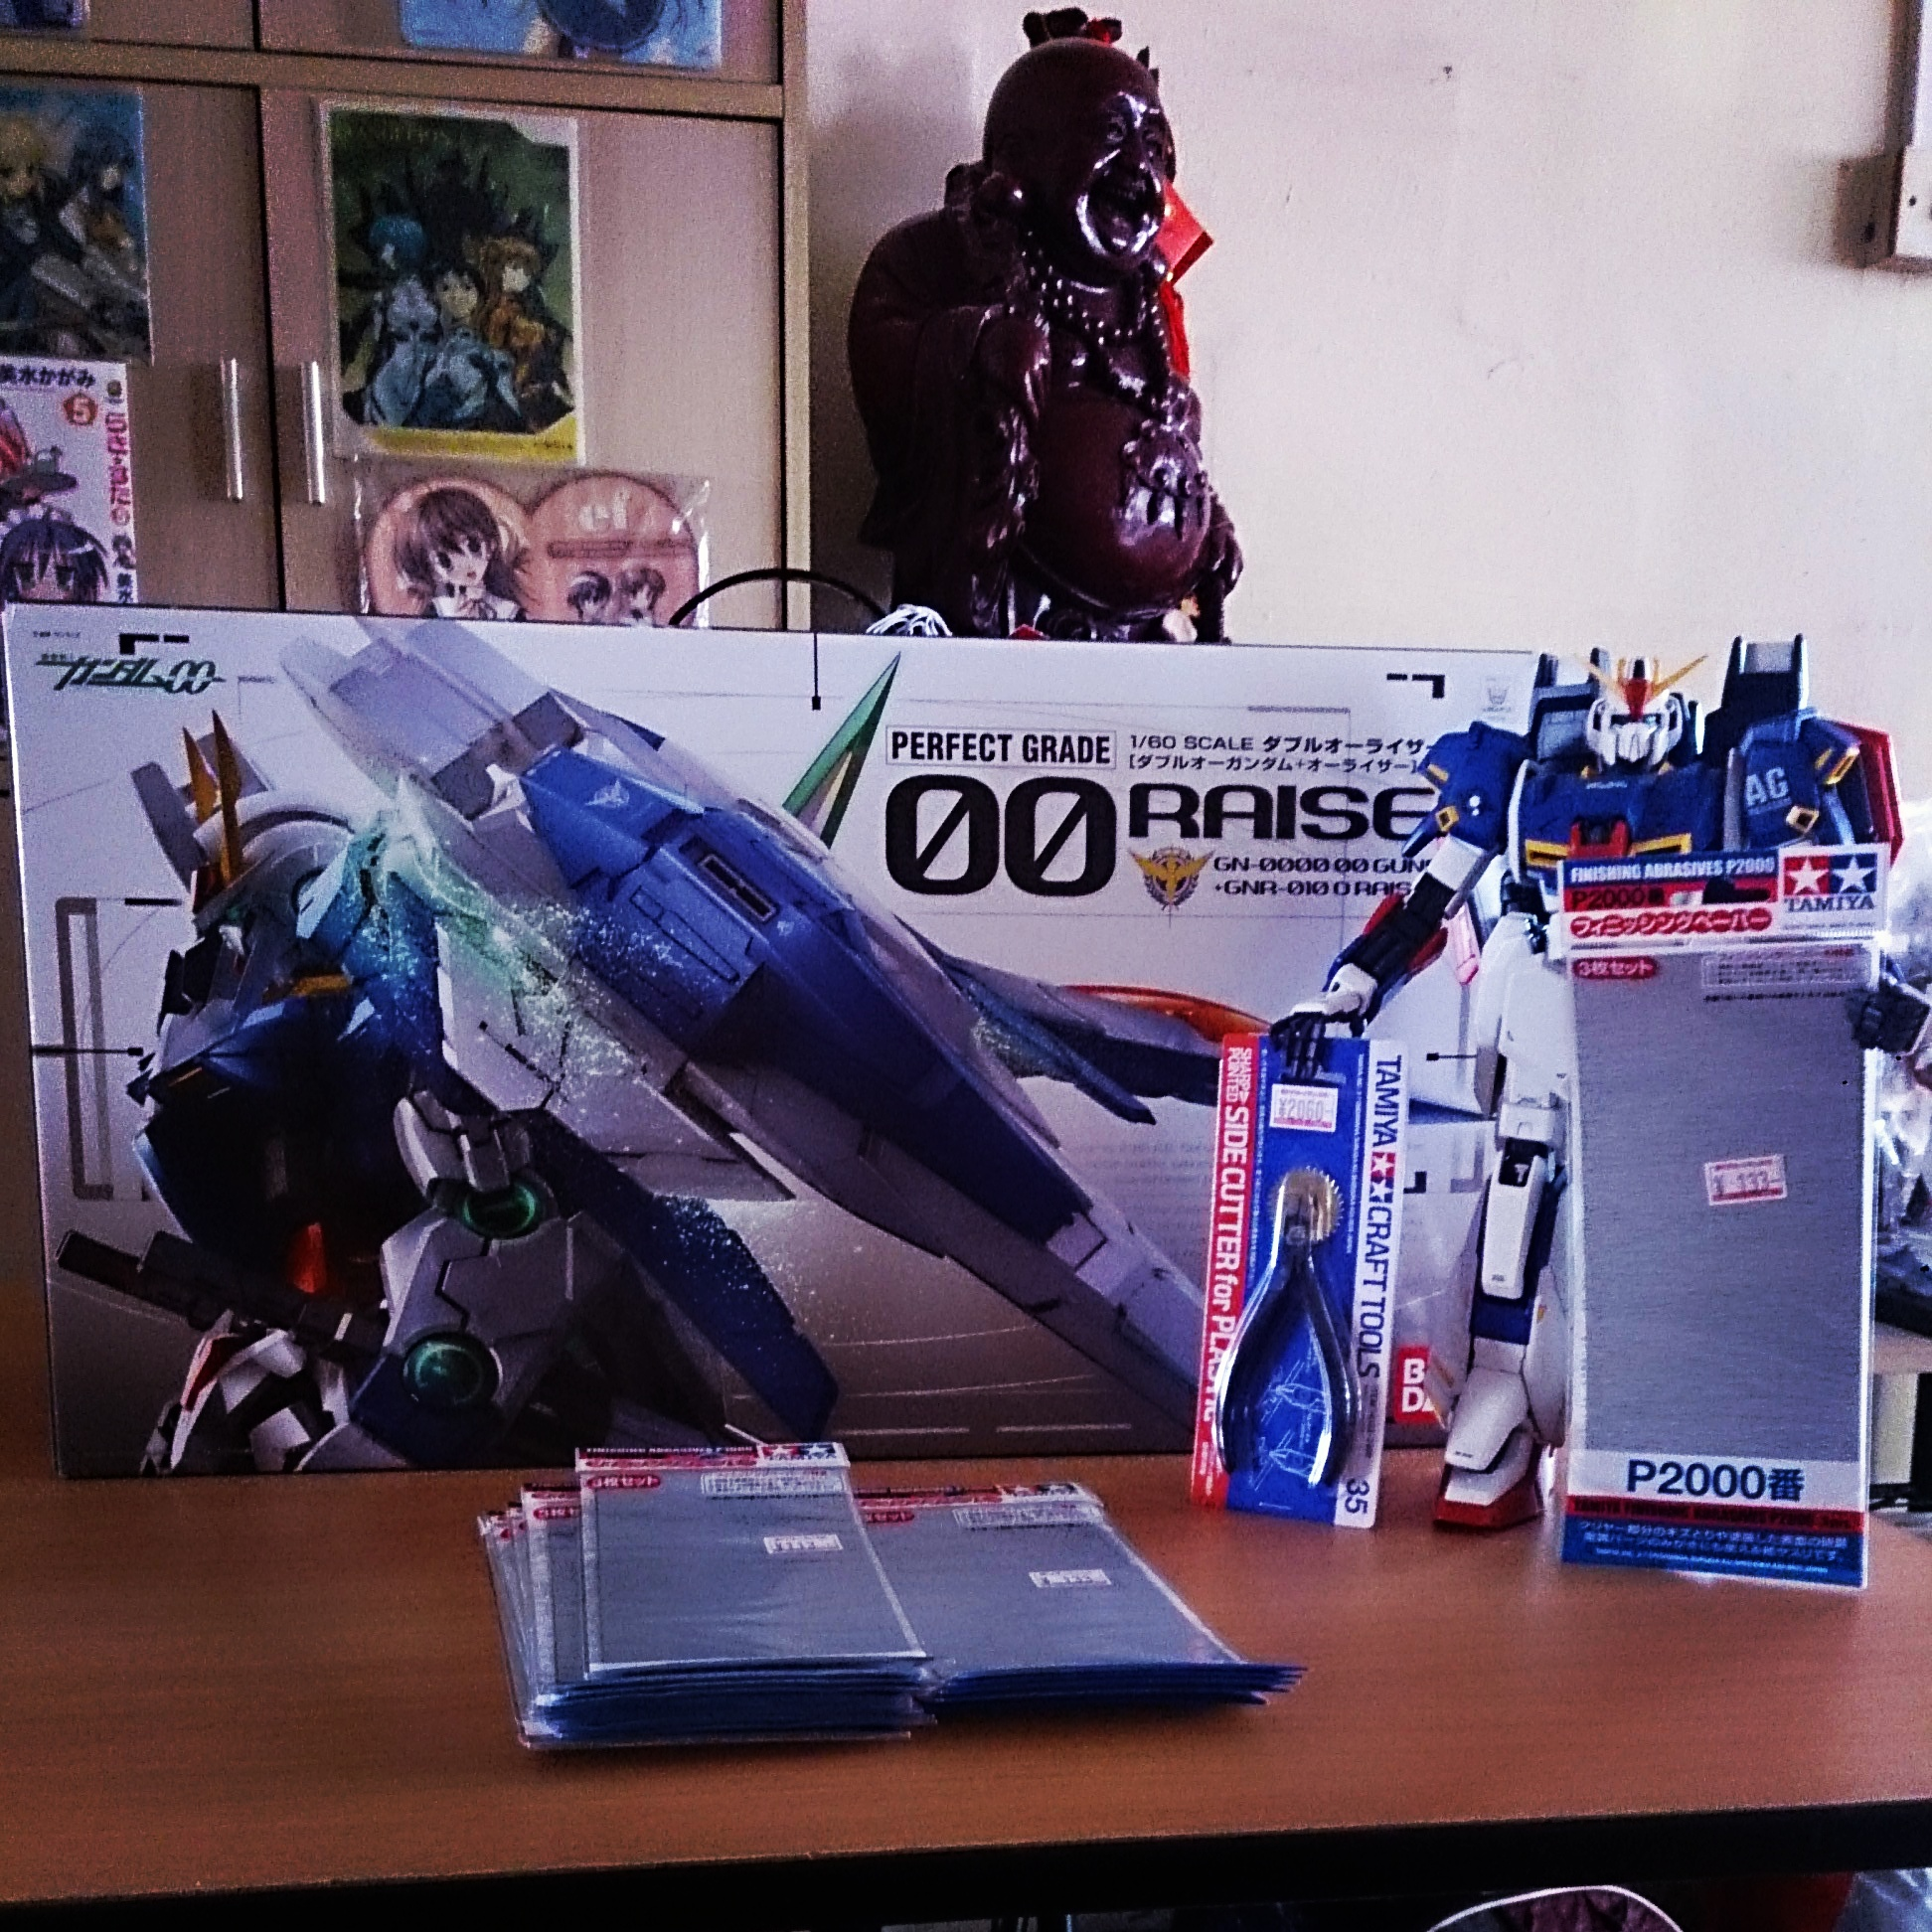 1/60 scale PG 00 awaiting assembly, standing by is the PG Zeta with the appropriate tools.